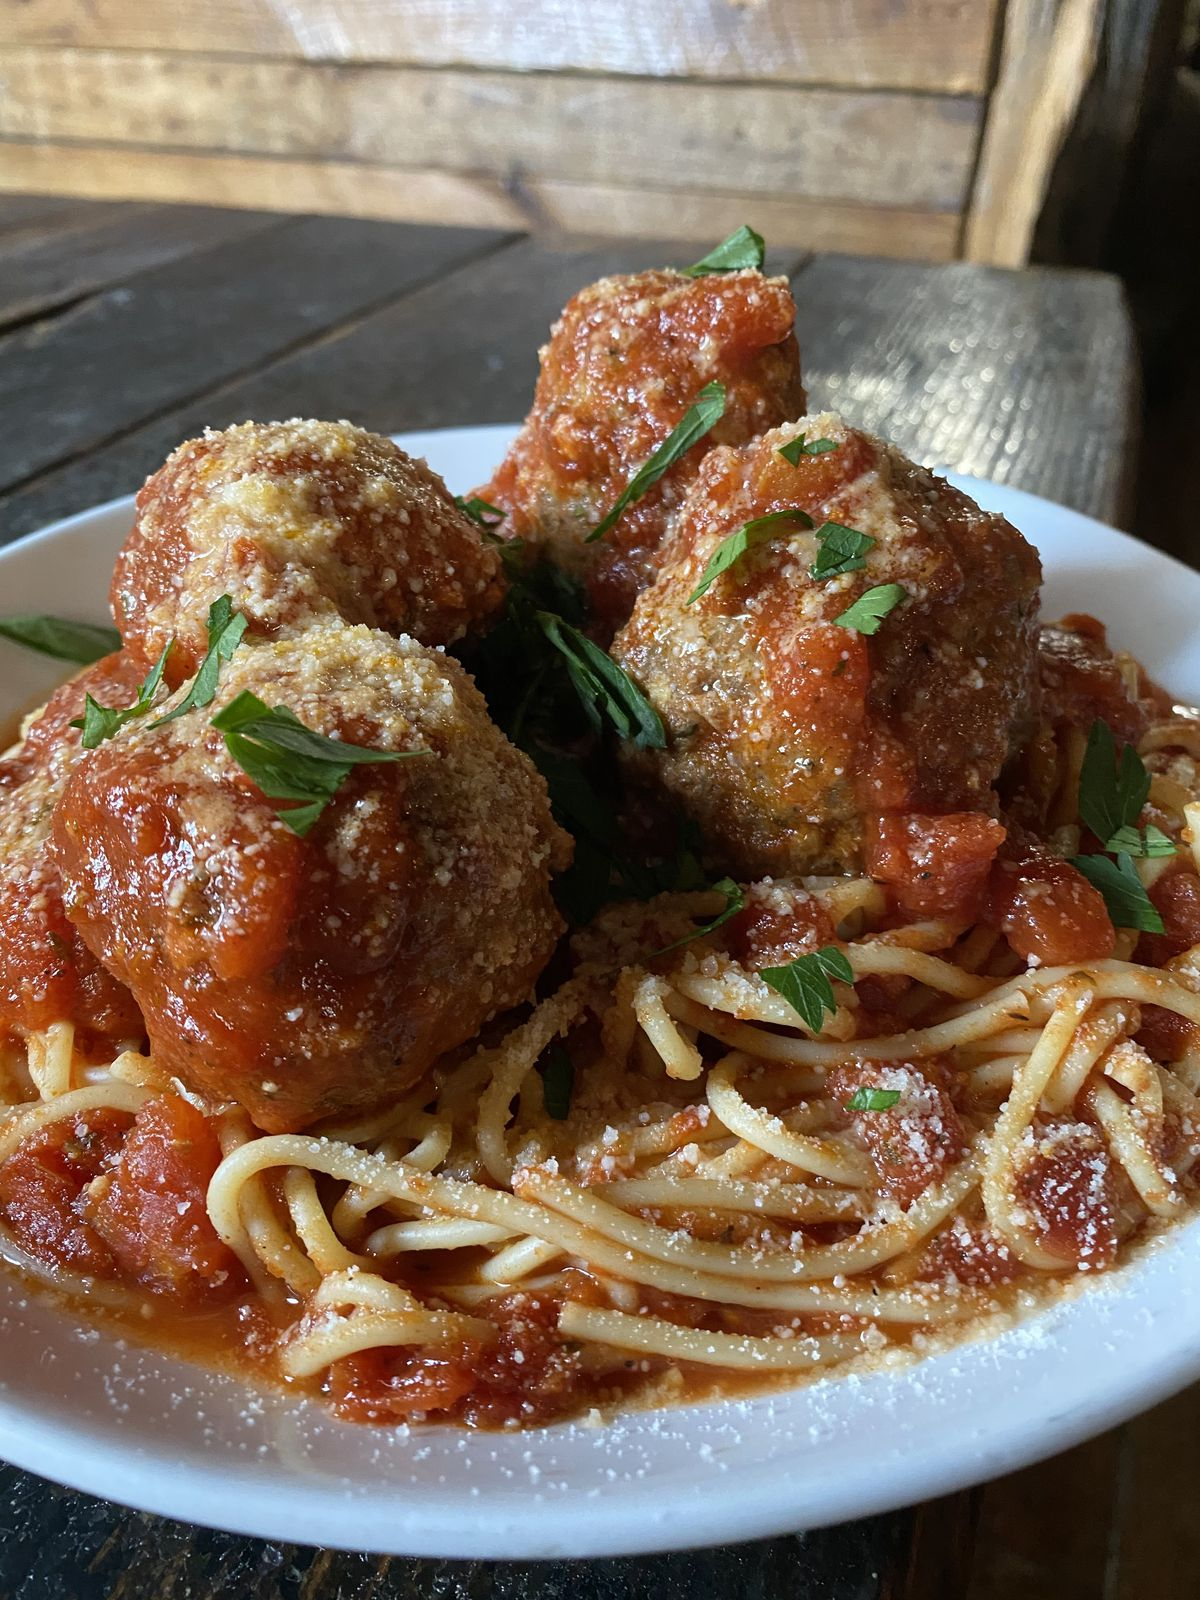 Spaghetti and meatballs from Granville Moore's